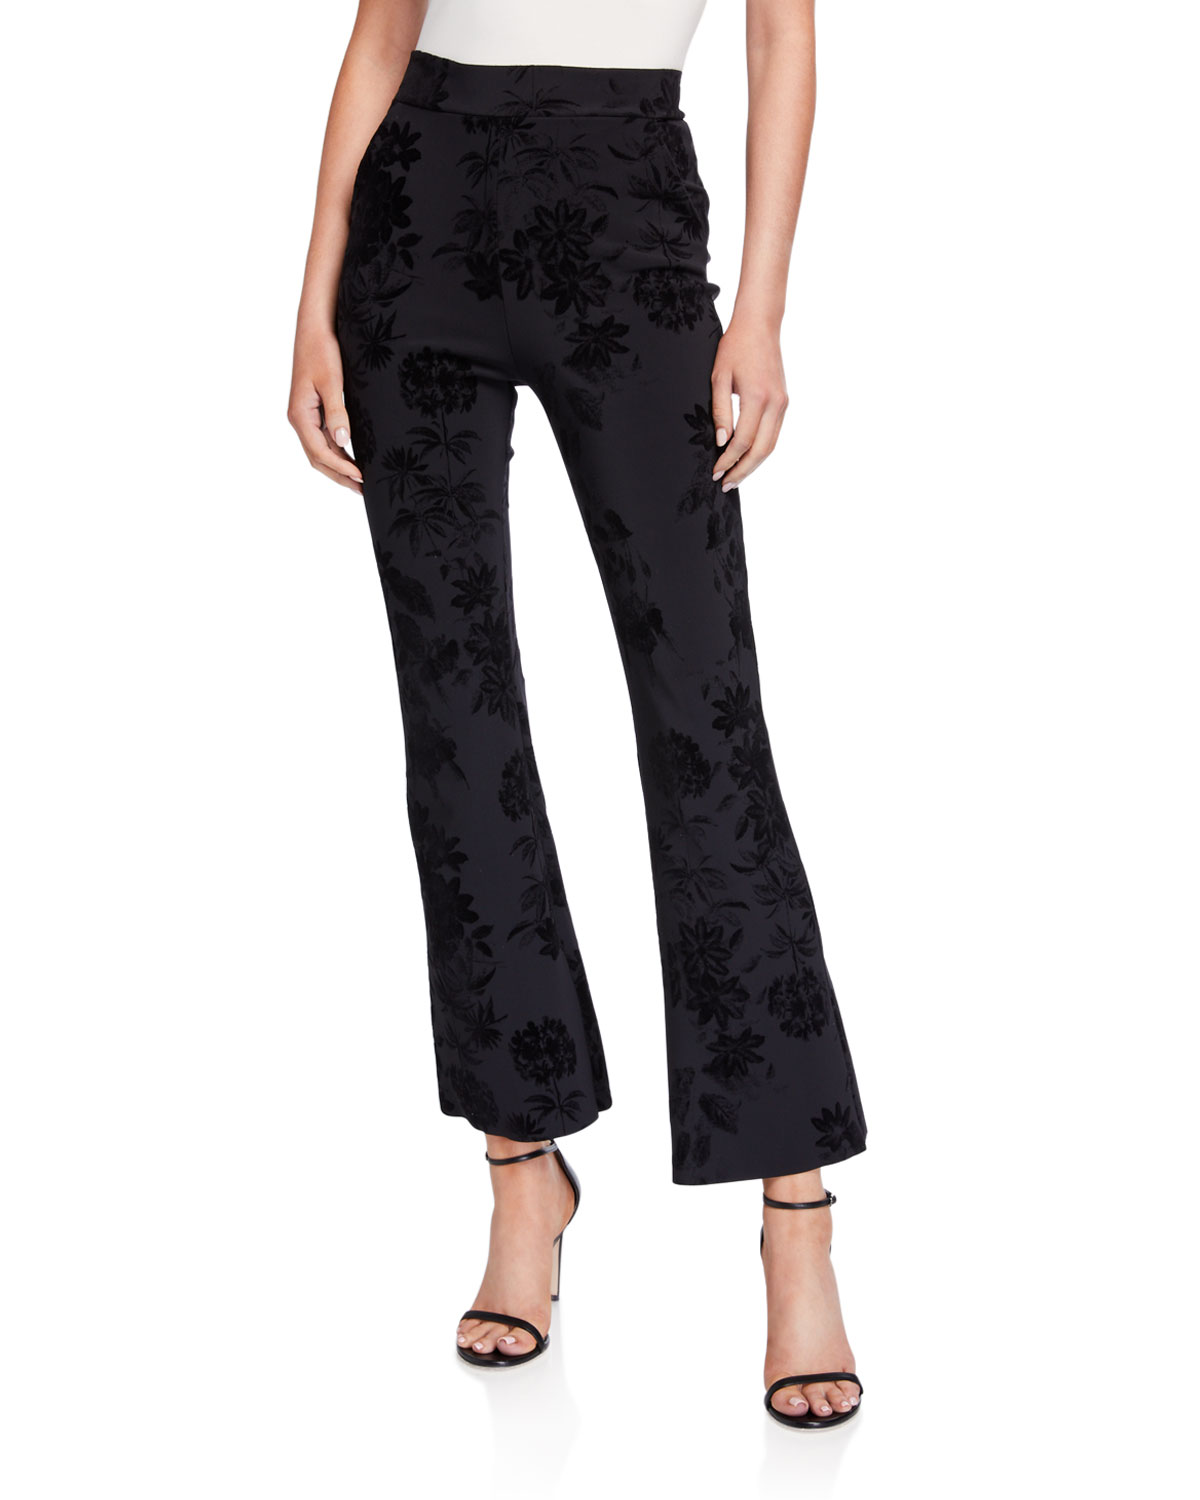 Chiara Boni La Petite Robe Pants NICHE FLORAL PRINTED BOOT-CUT ANKLE PANTS